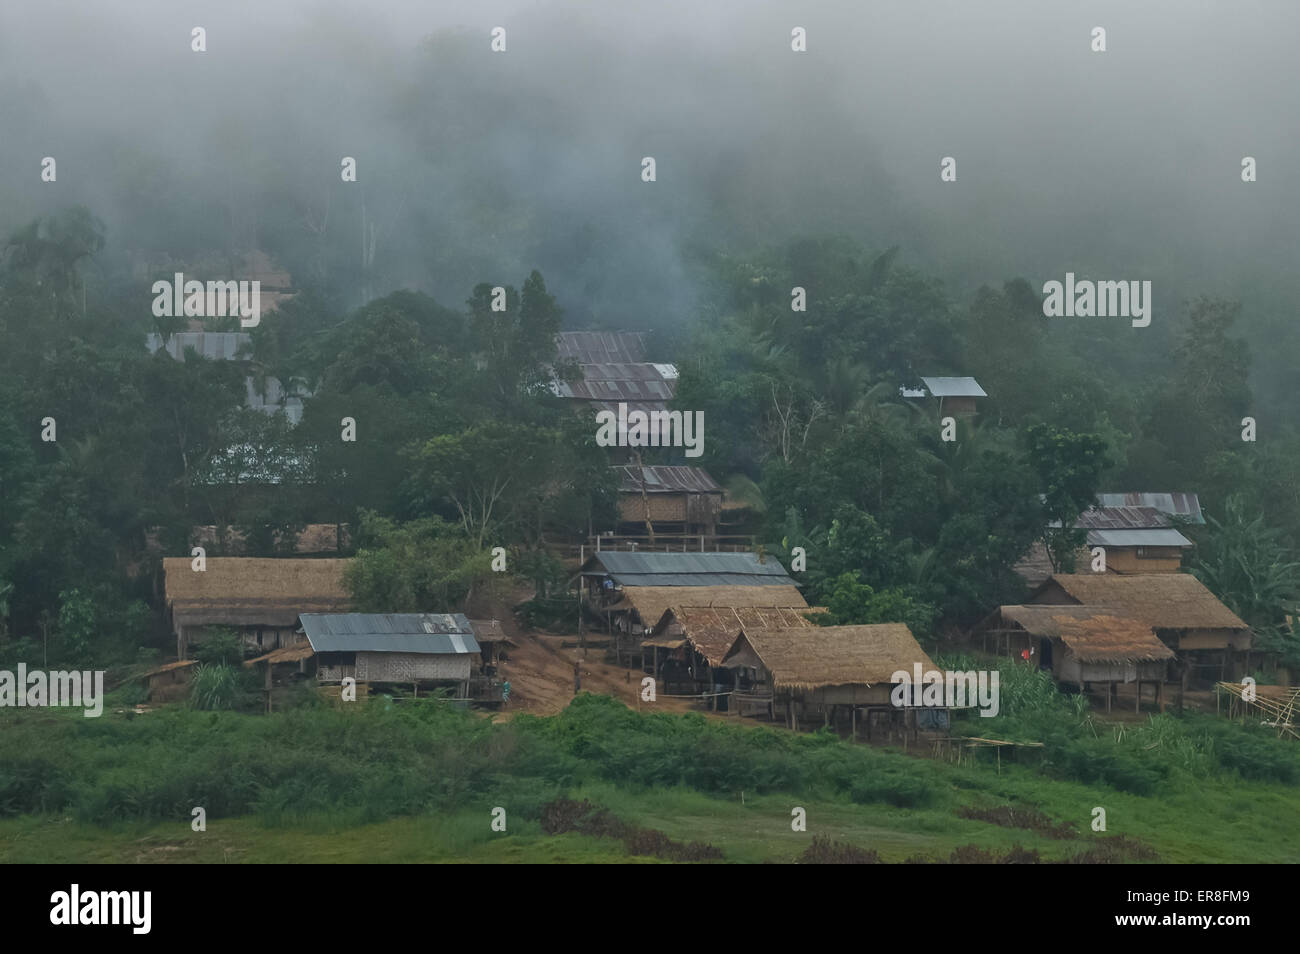 Rural hut cottages in a country village in Thailand. - Stock Image